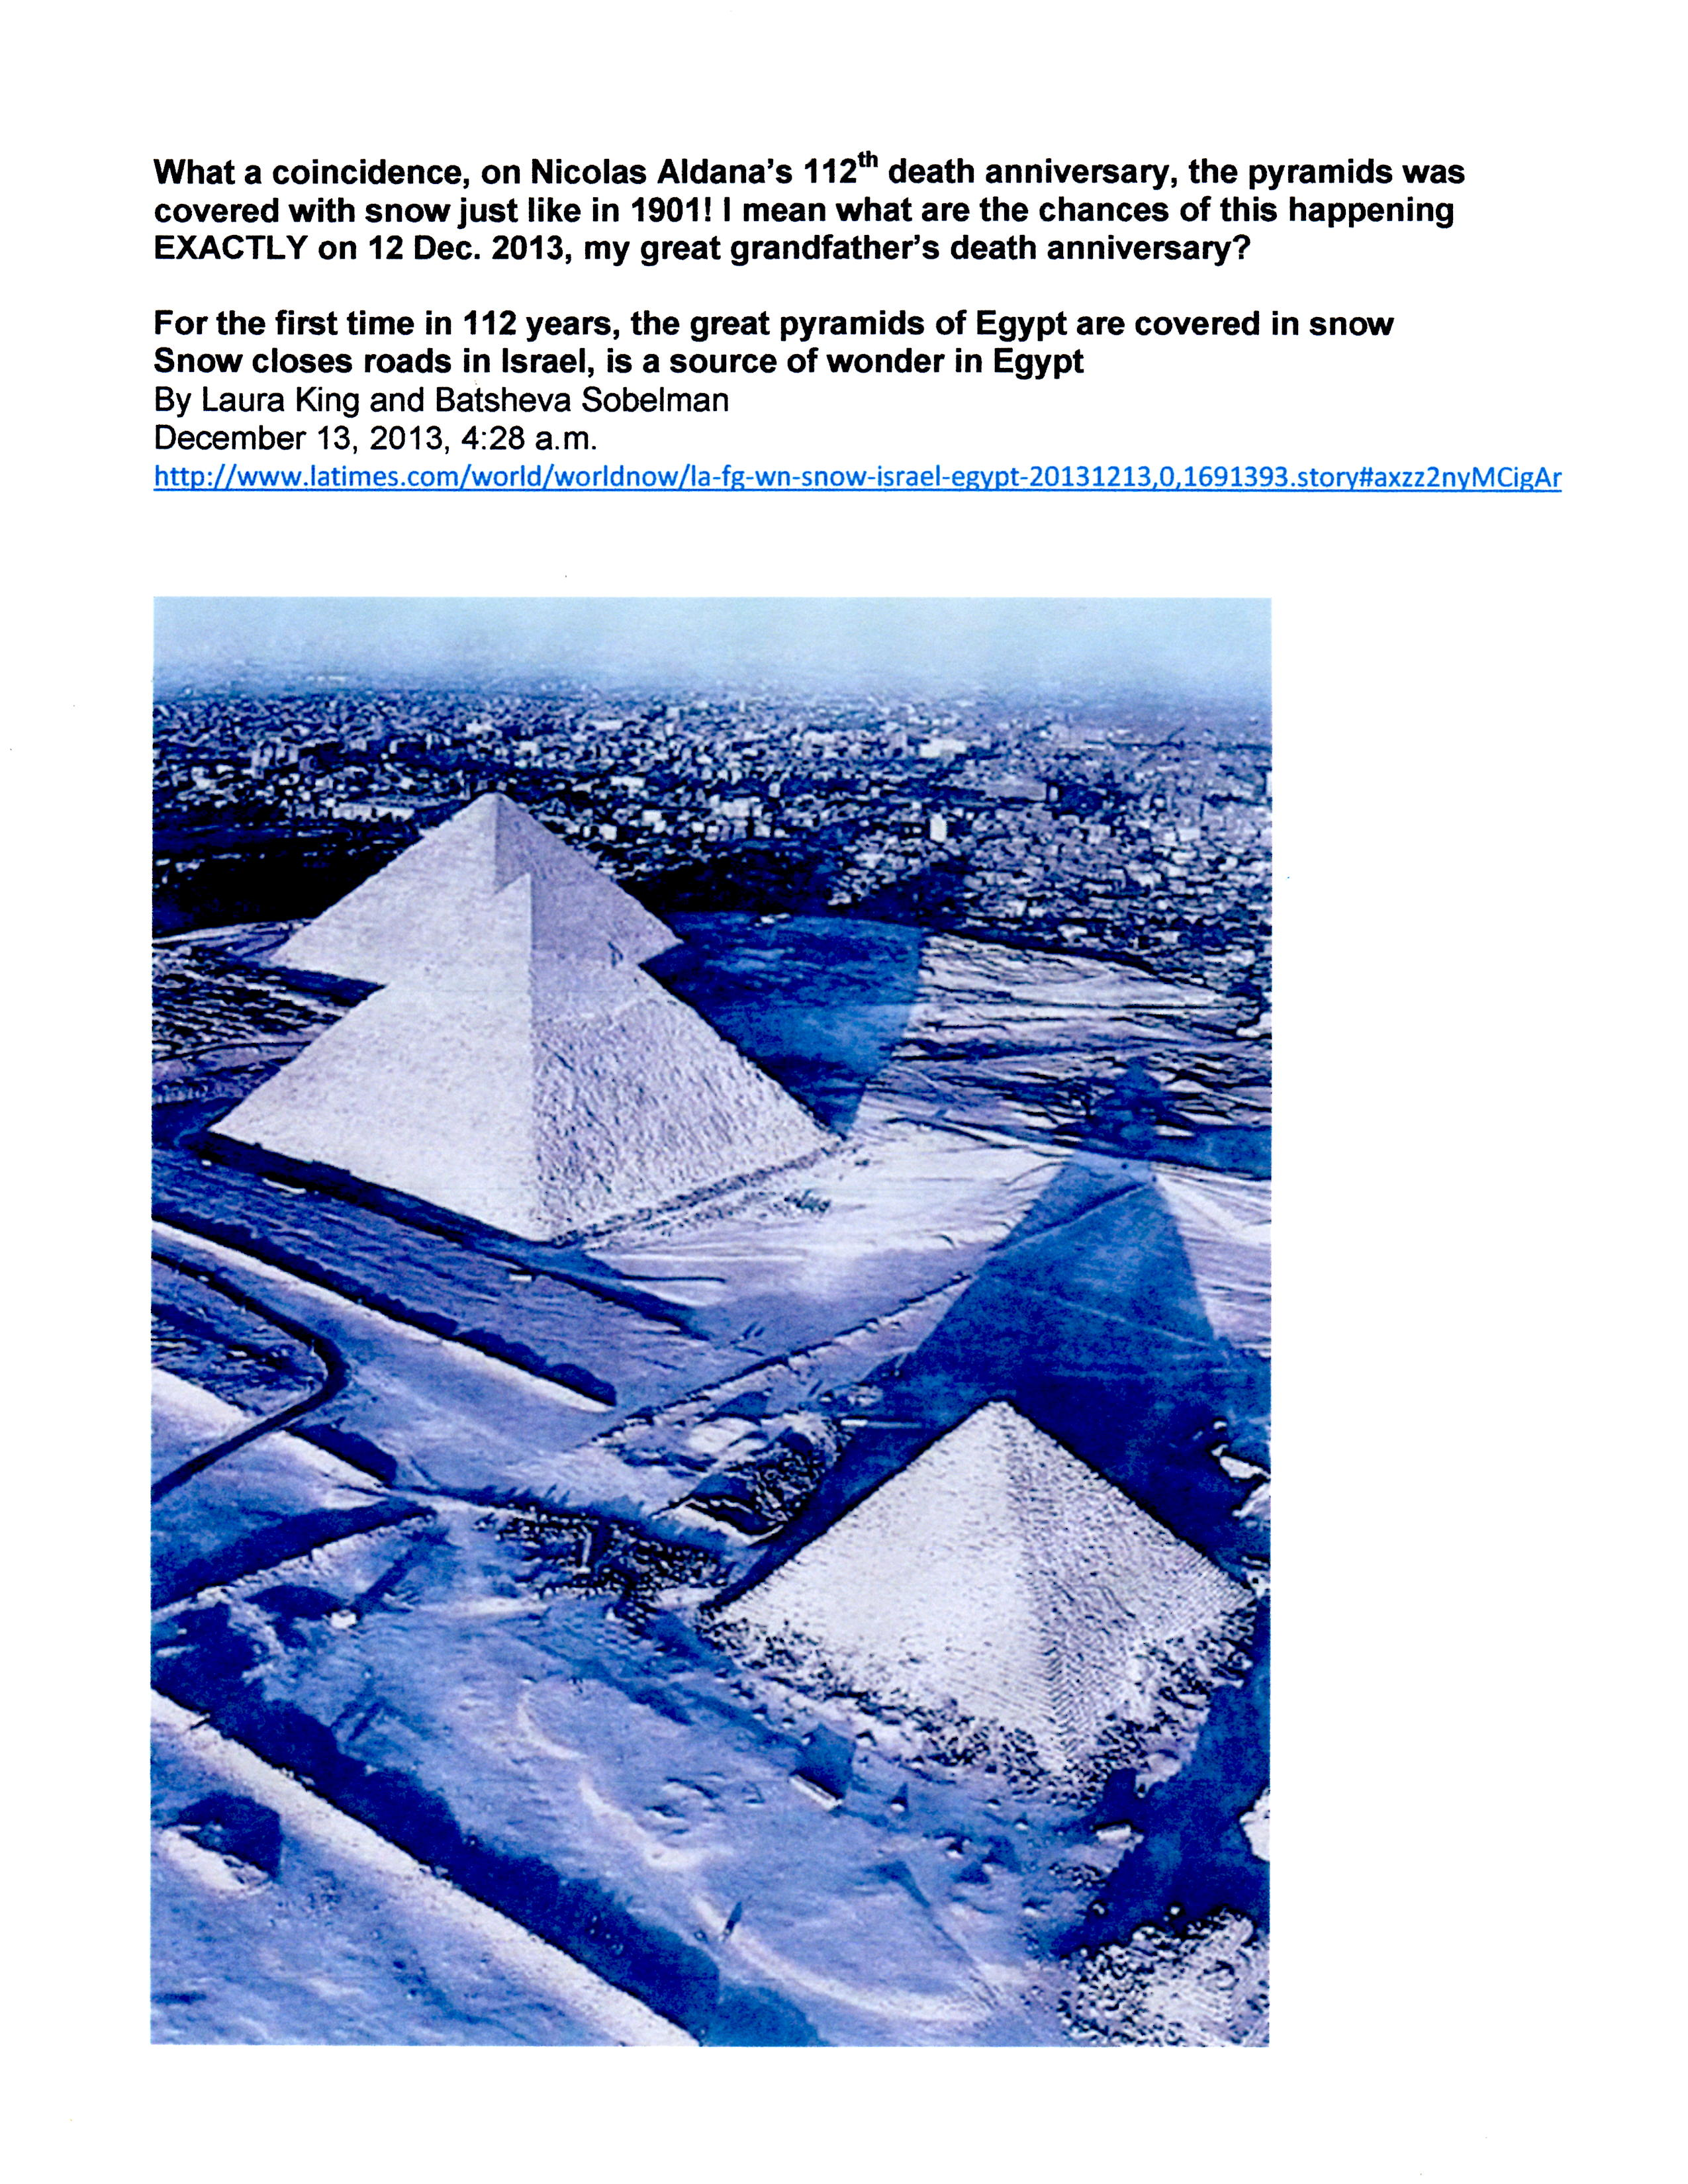 Blog - 1st time in 112 yrs. snow covers the great pyramids of Egypt 12-12-13